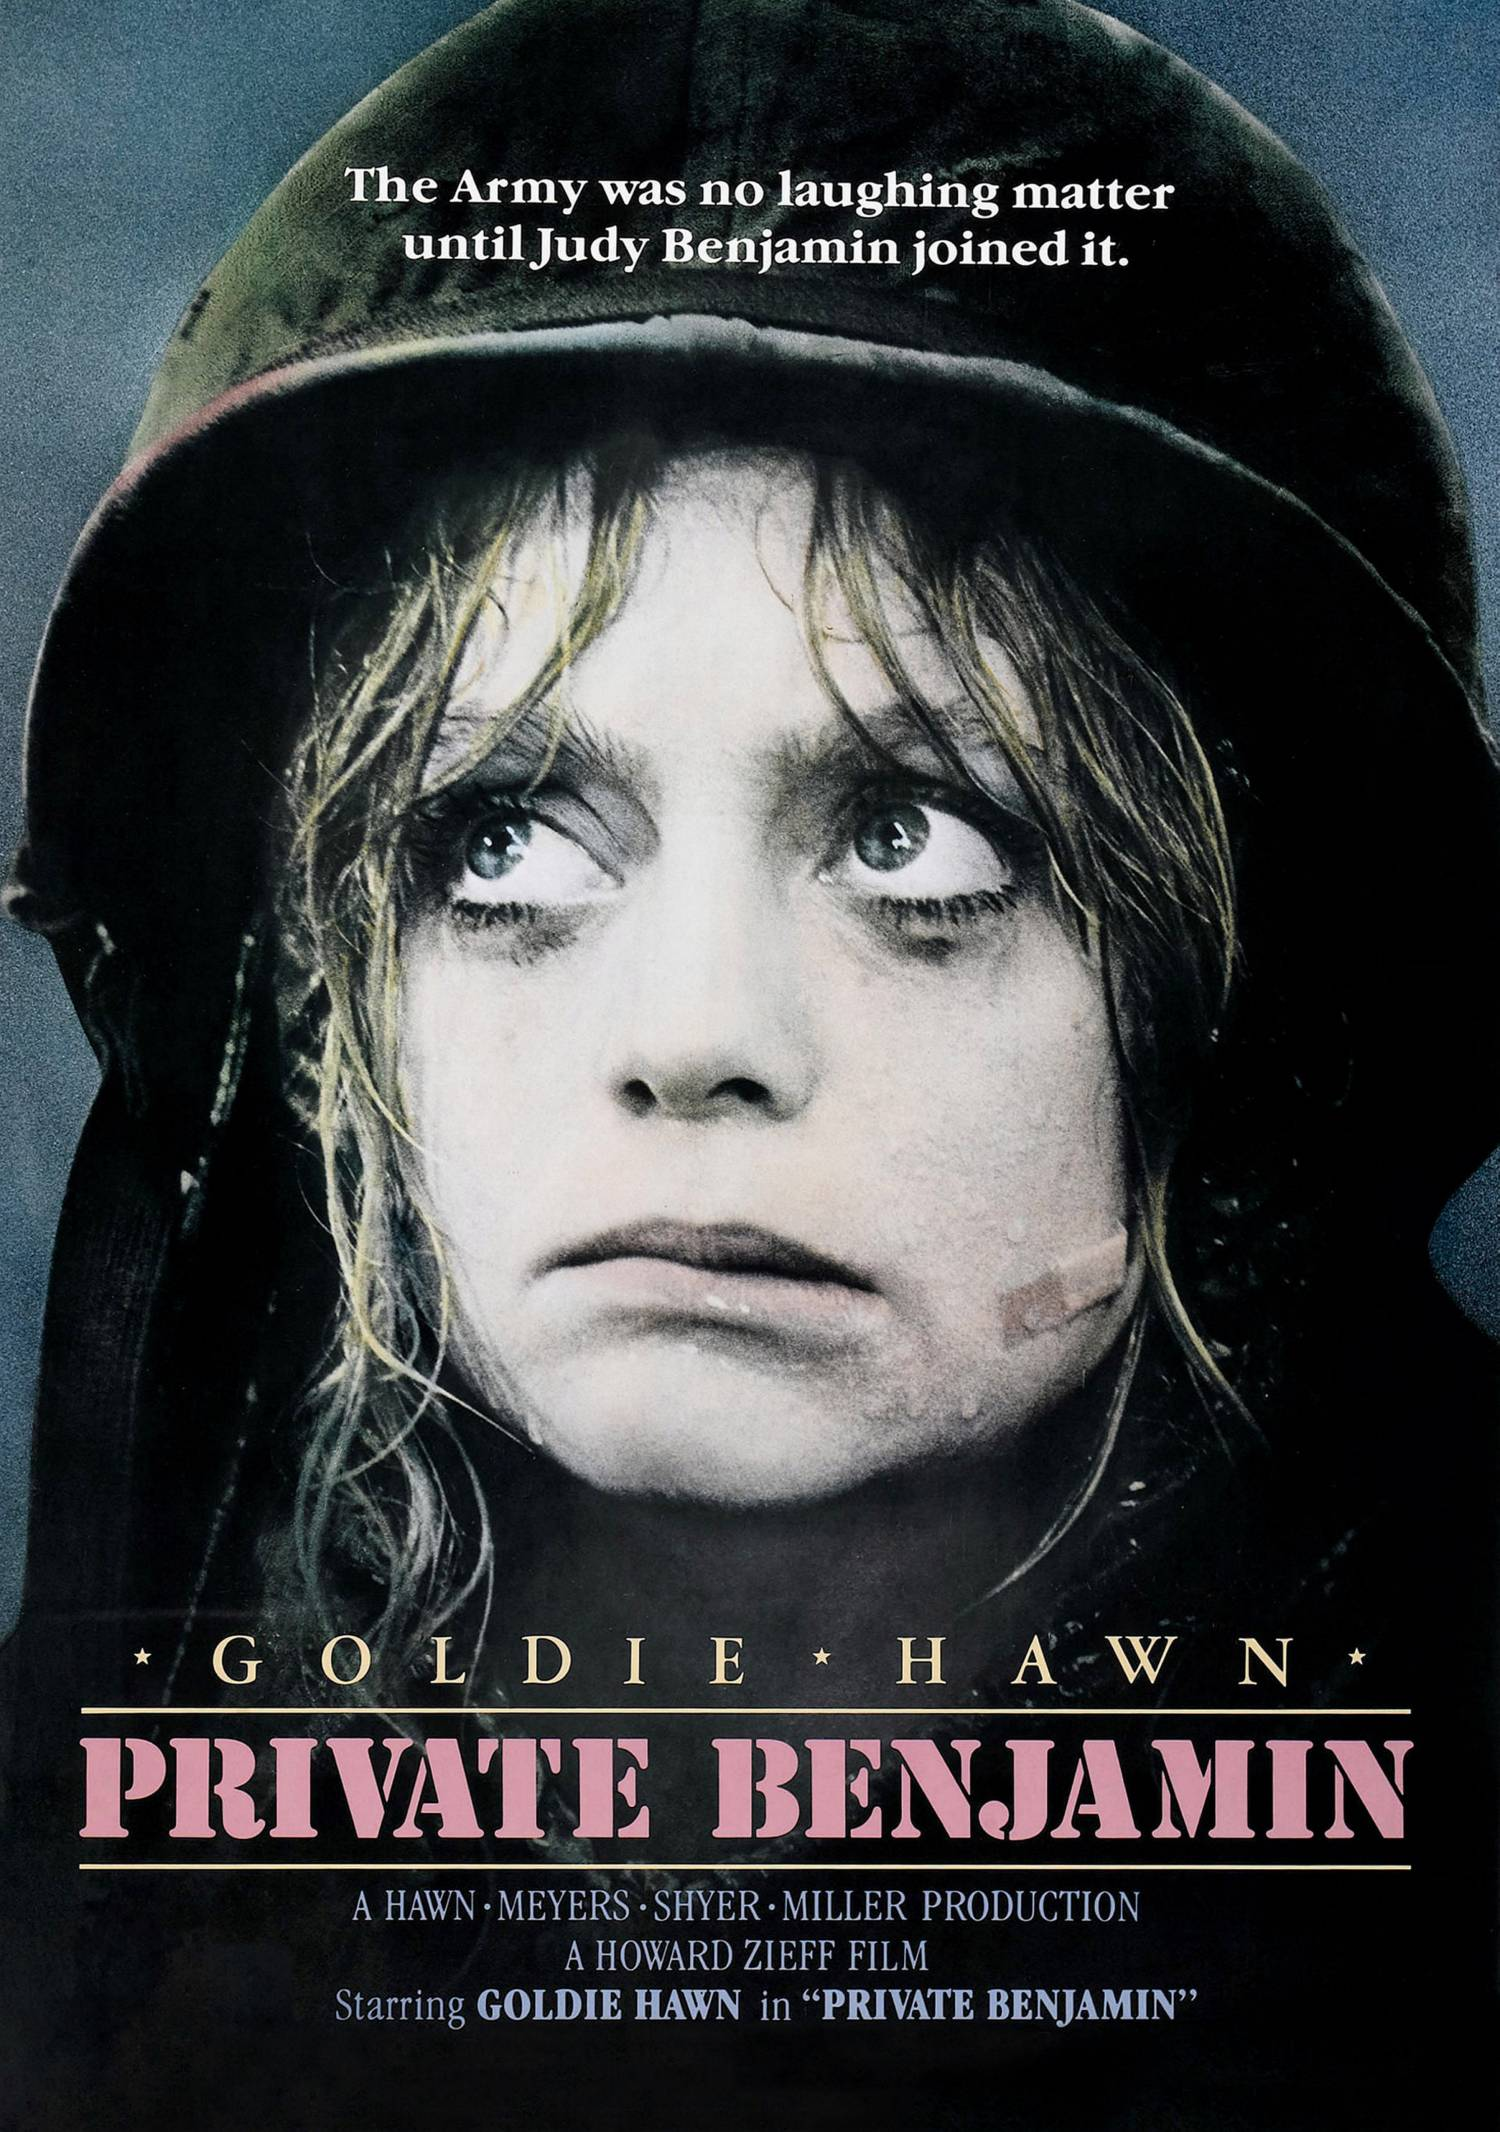 """Private Benjamin"", 1980 American comedy film starring Goldie Hawn."